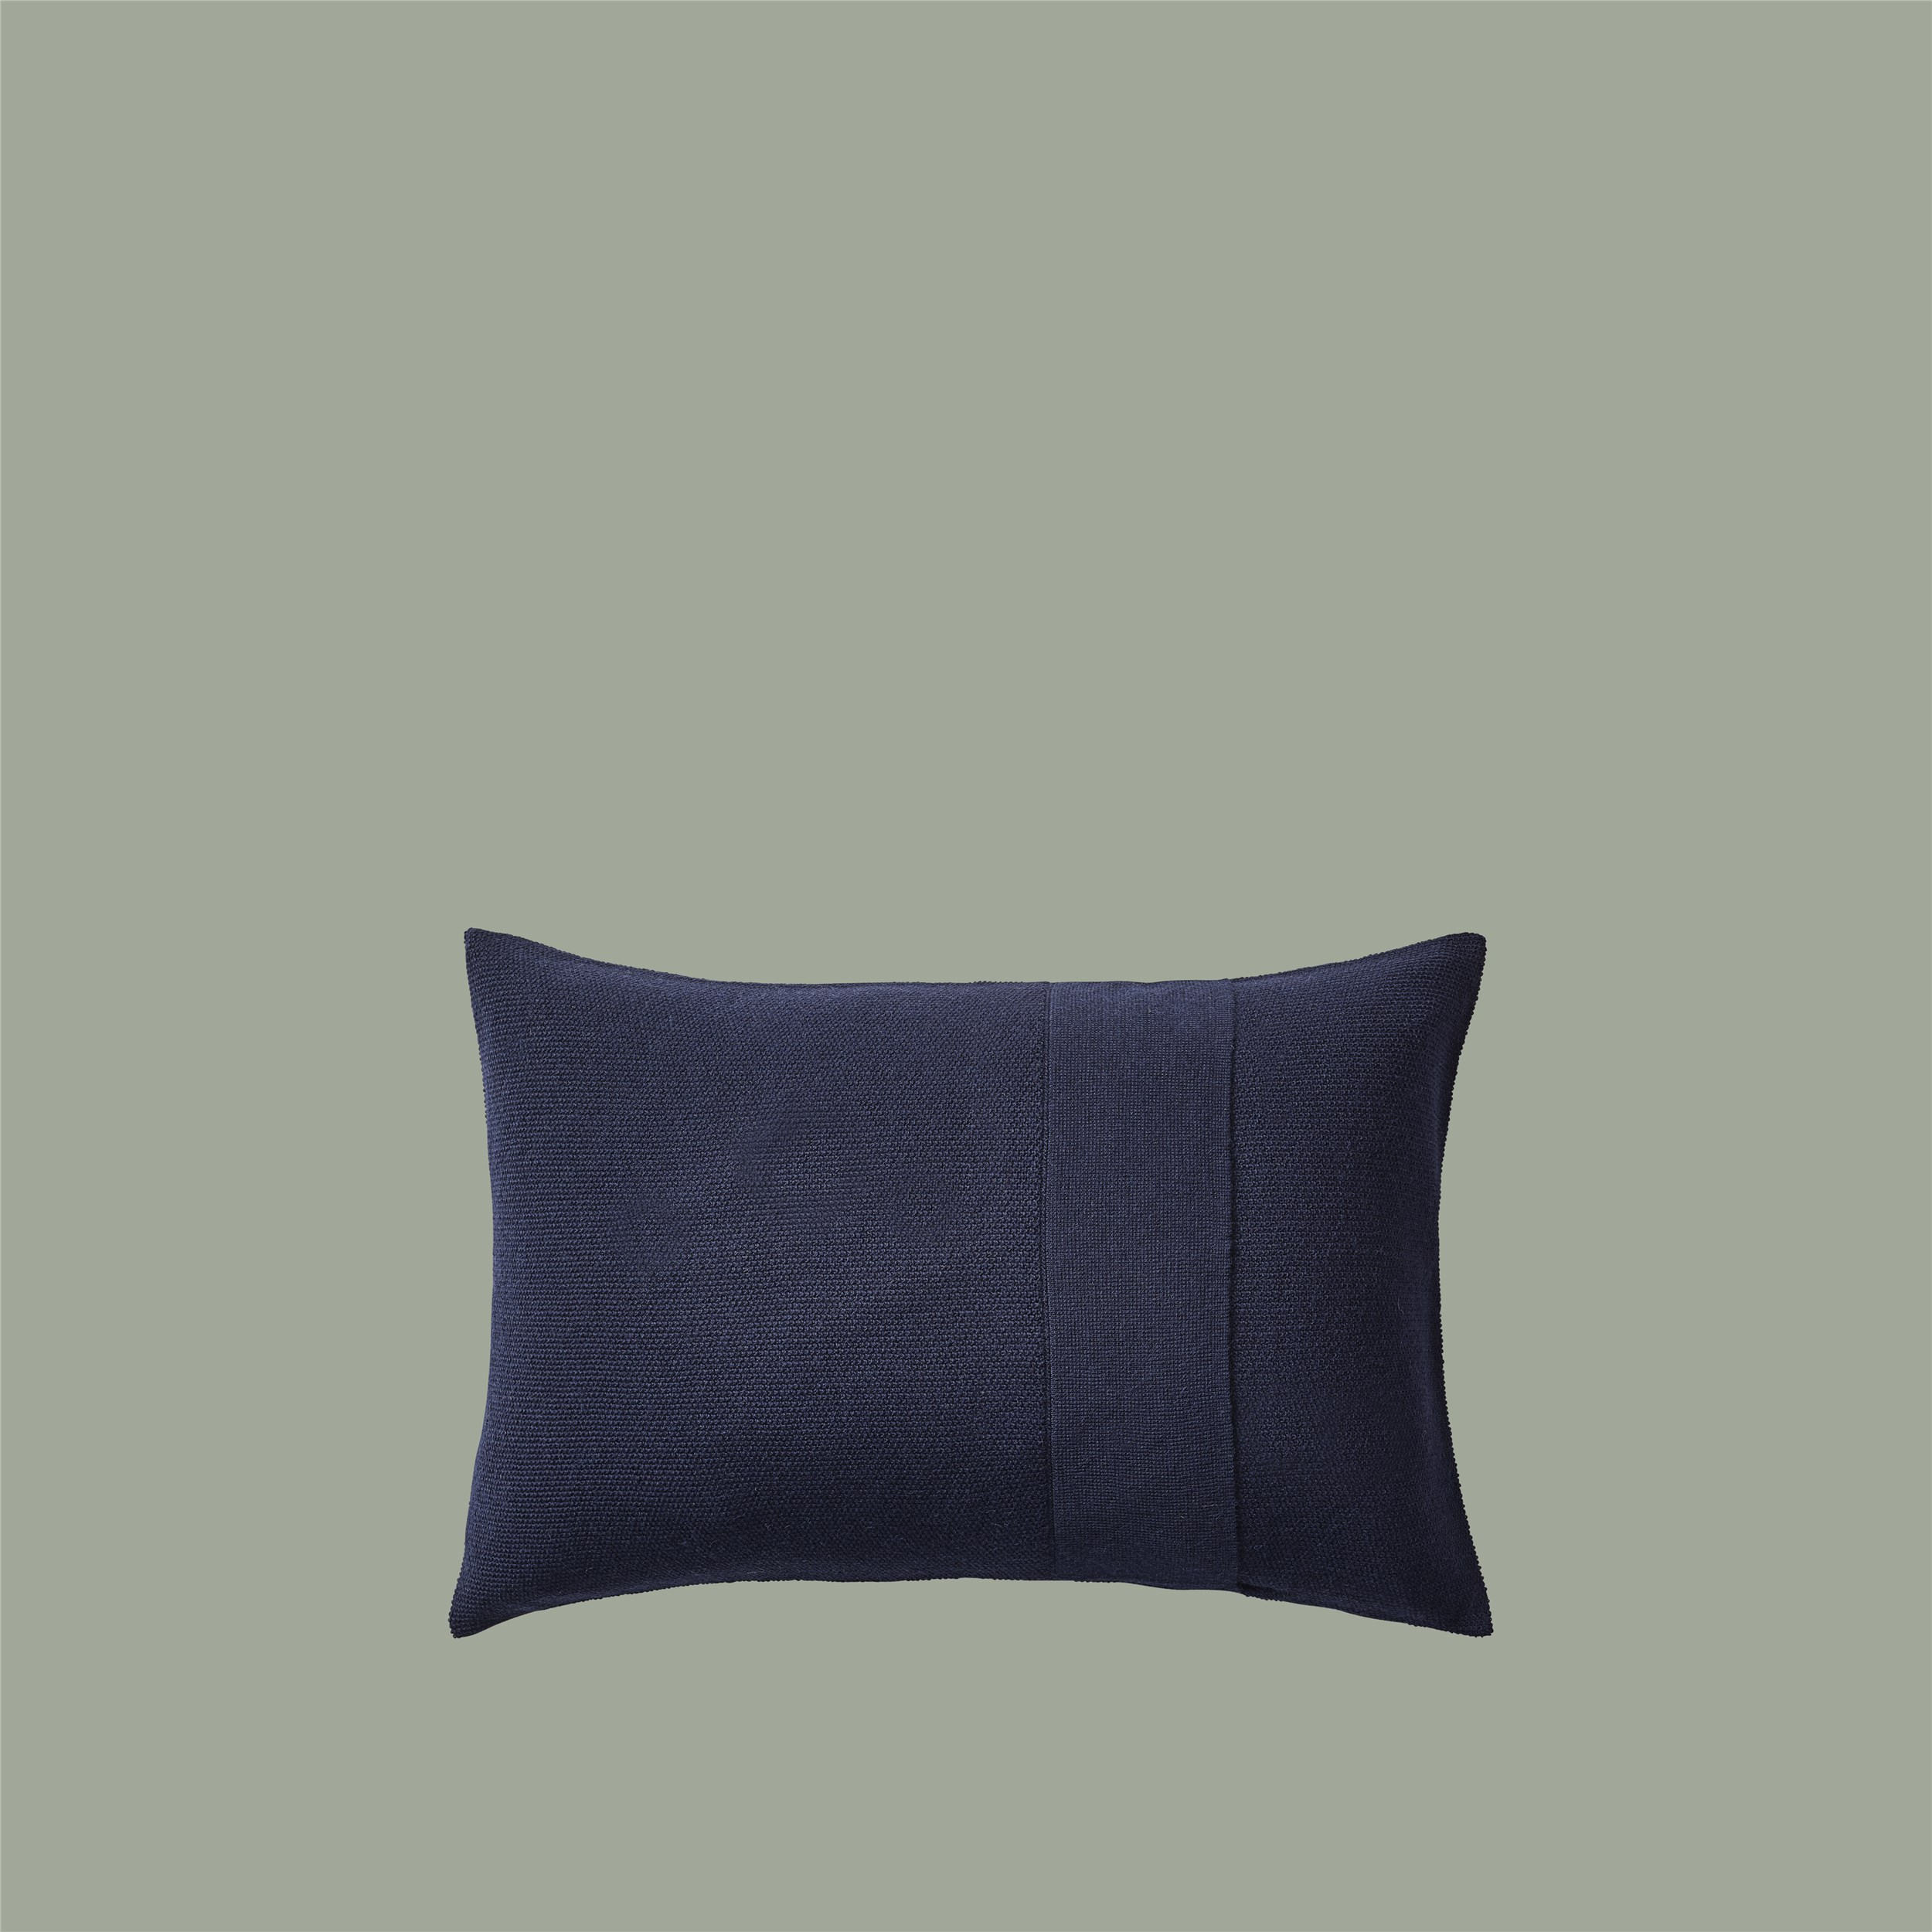 Layer Cushion 40x60 midnight blue